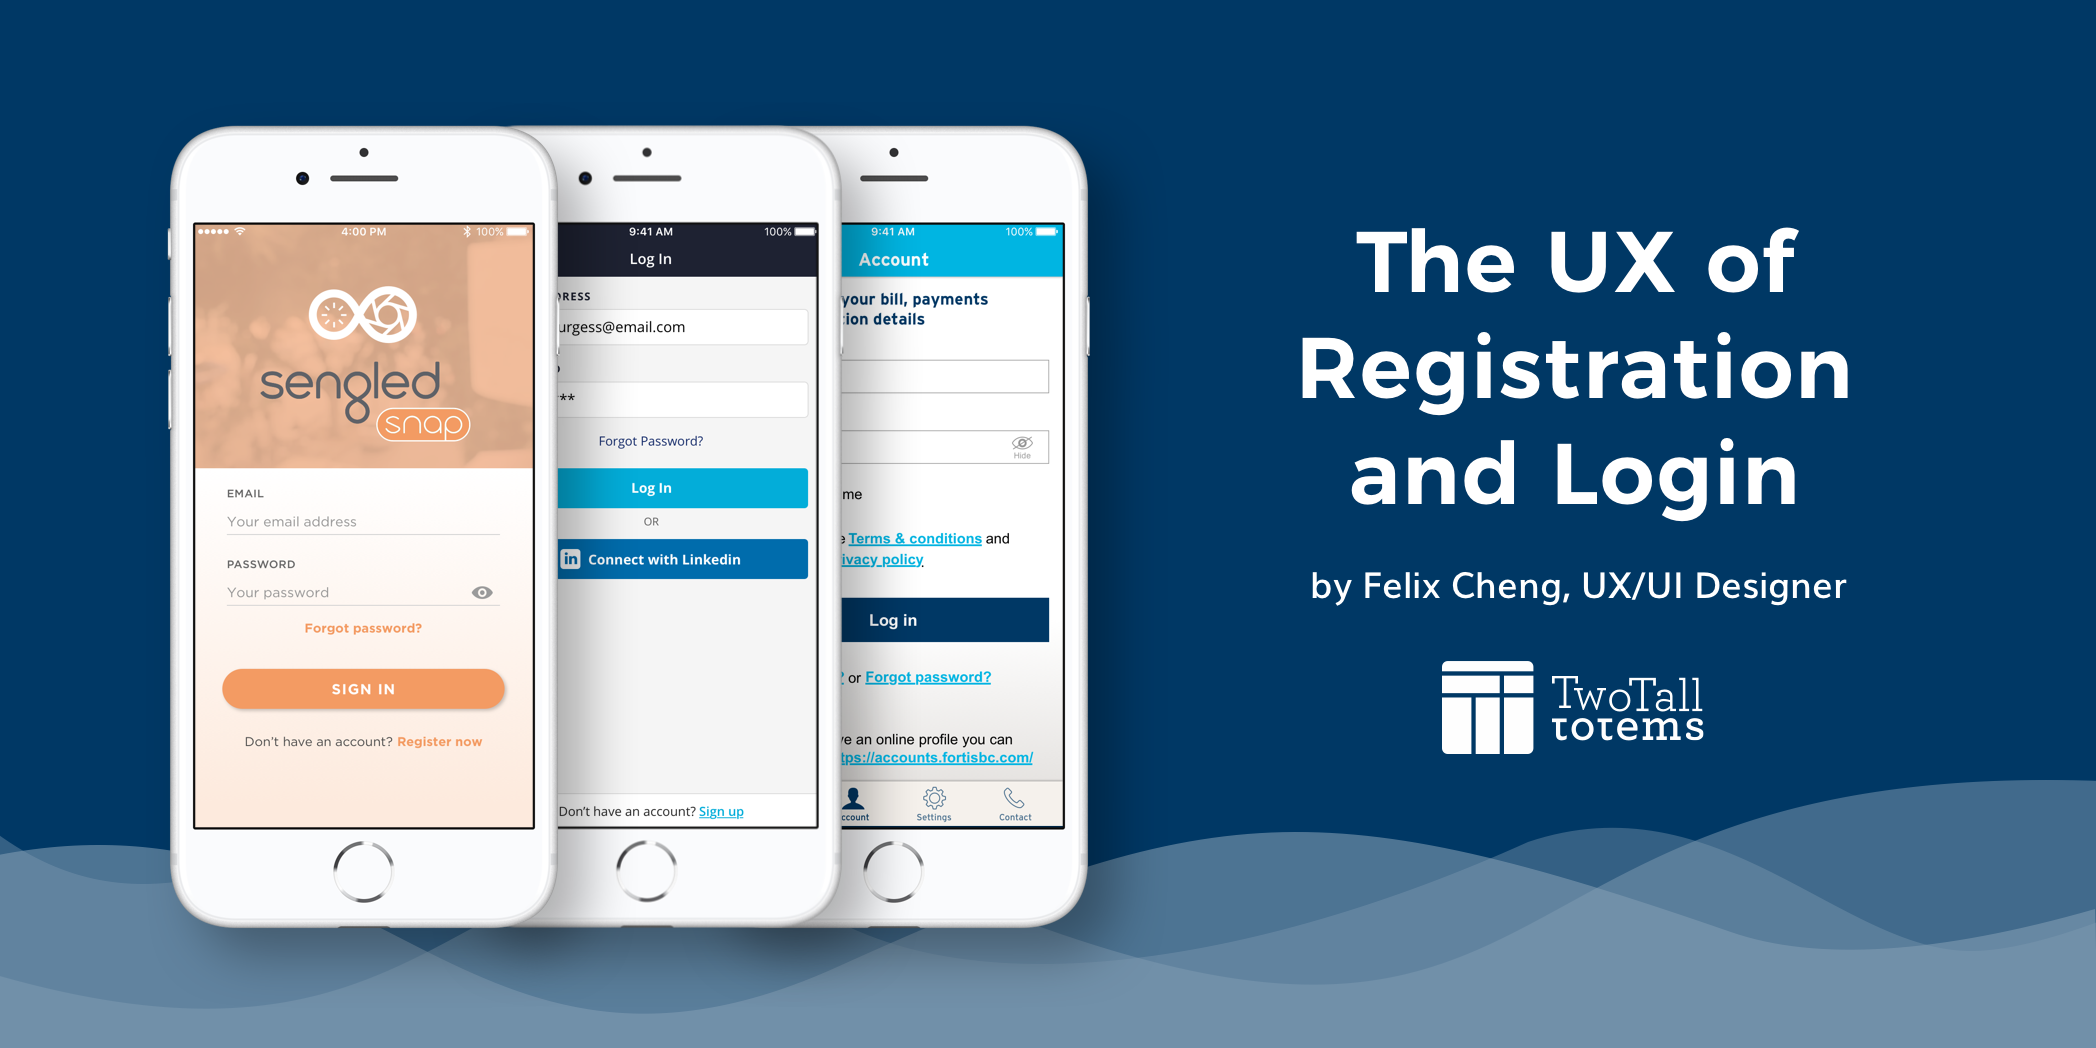 The UX of registration and login